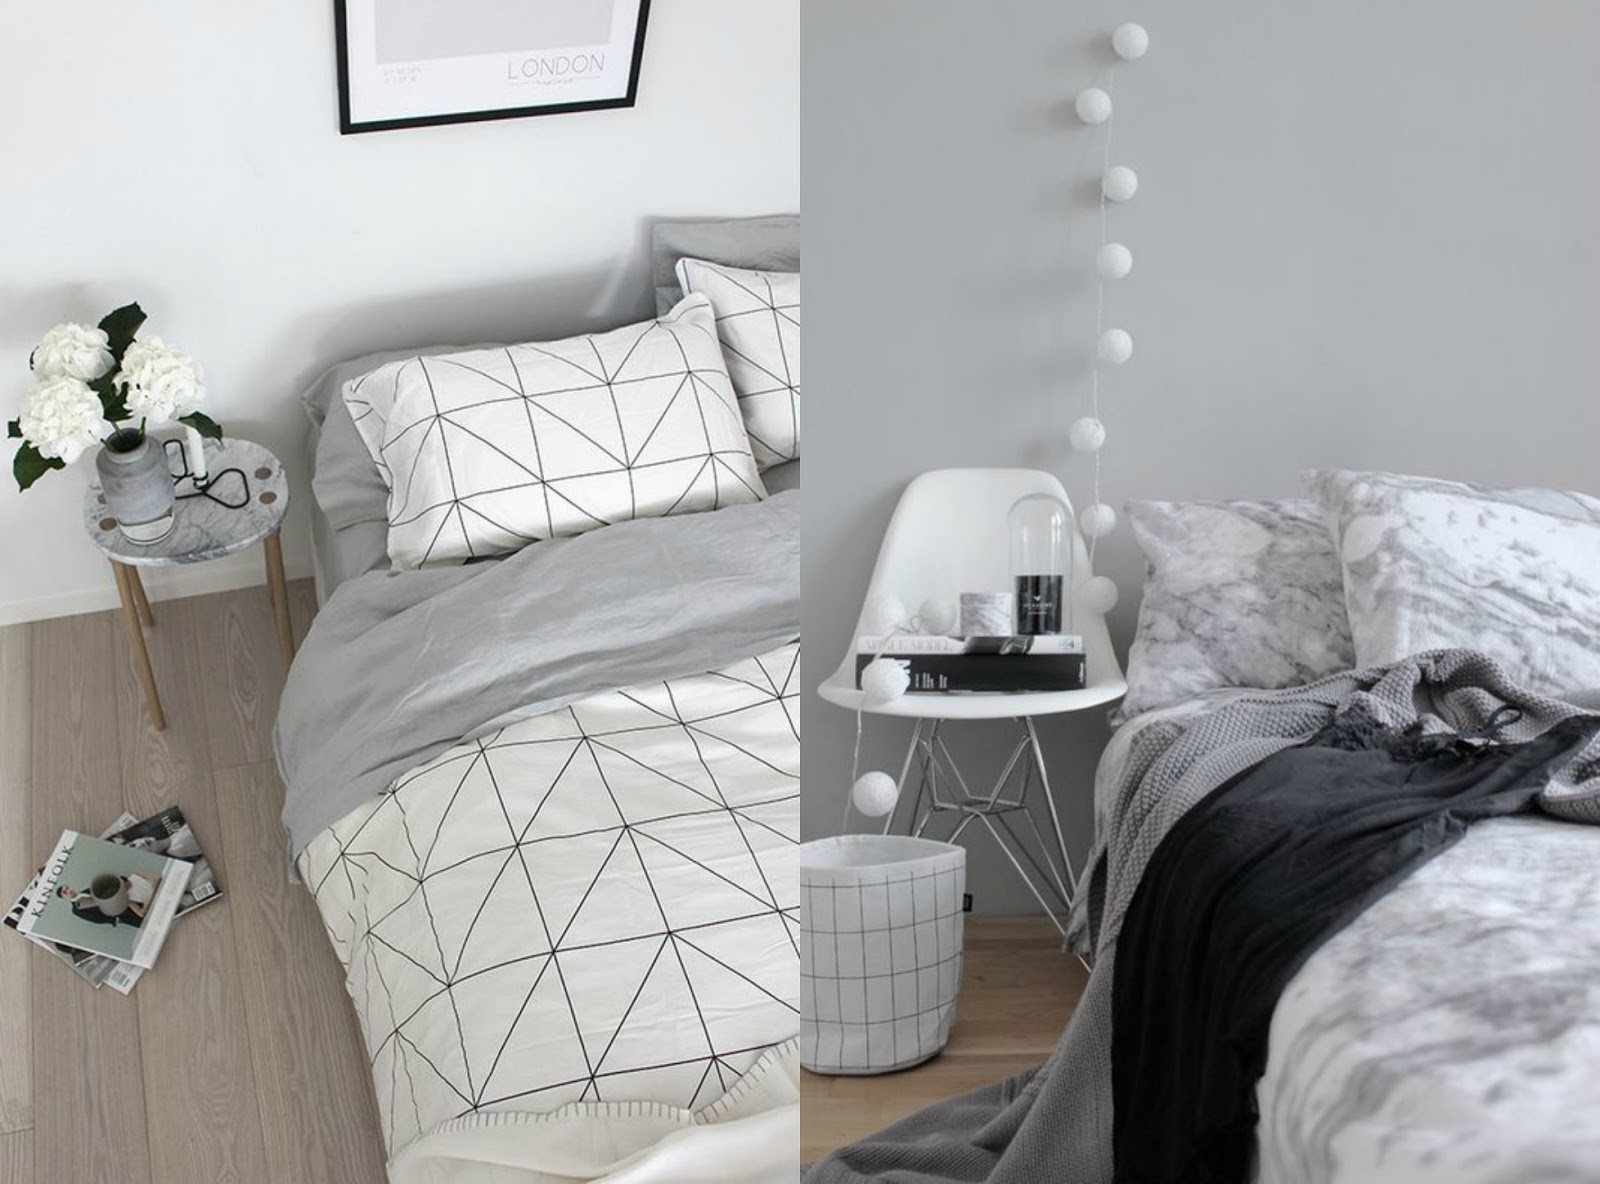 Pinterest Bedroom Inspiration   See The Stars Blog. Pinterest Mood Boards  Bedroom Inspiration    See The Stars